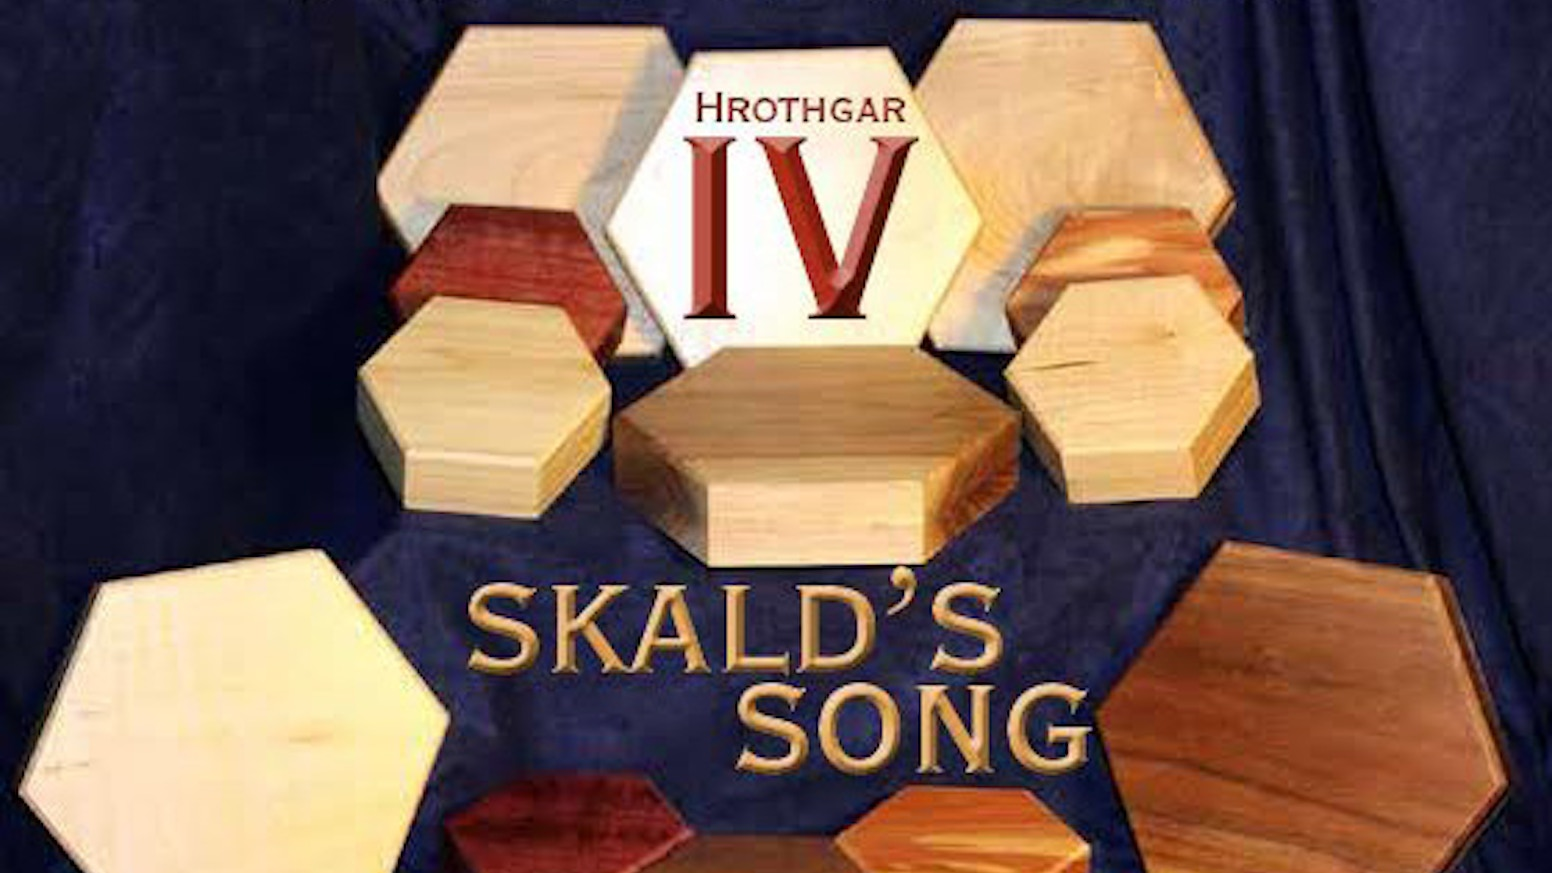 Hrothgar returns with its fourth project. Skald's Song introduces two new storage solutions for your games. Quality Hardwoods...Always